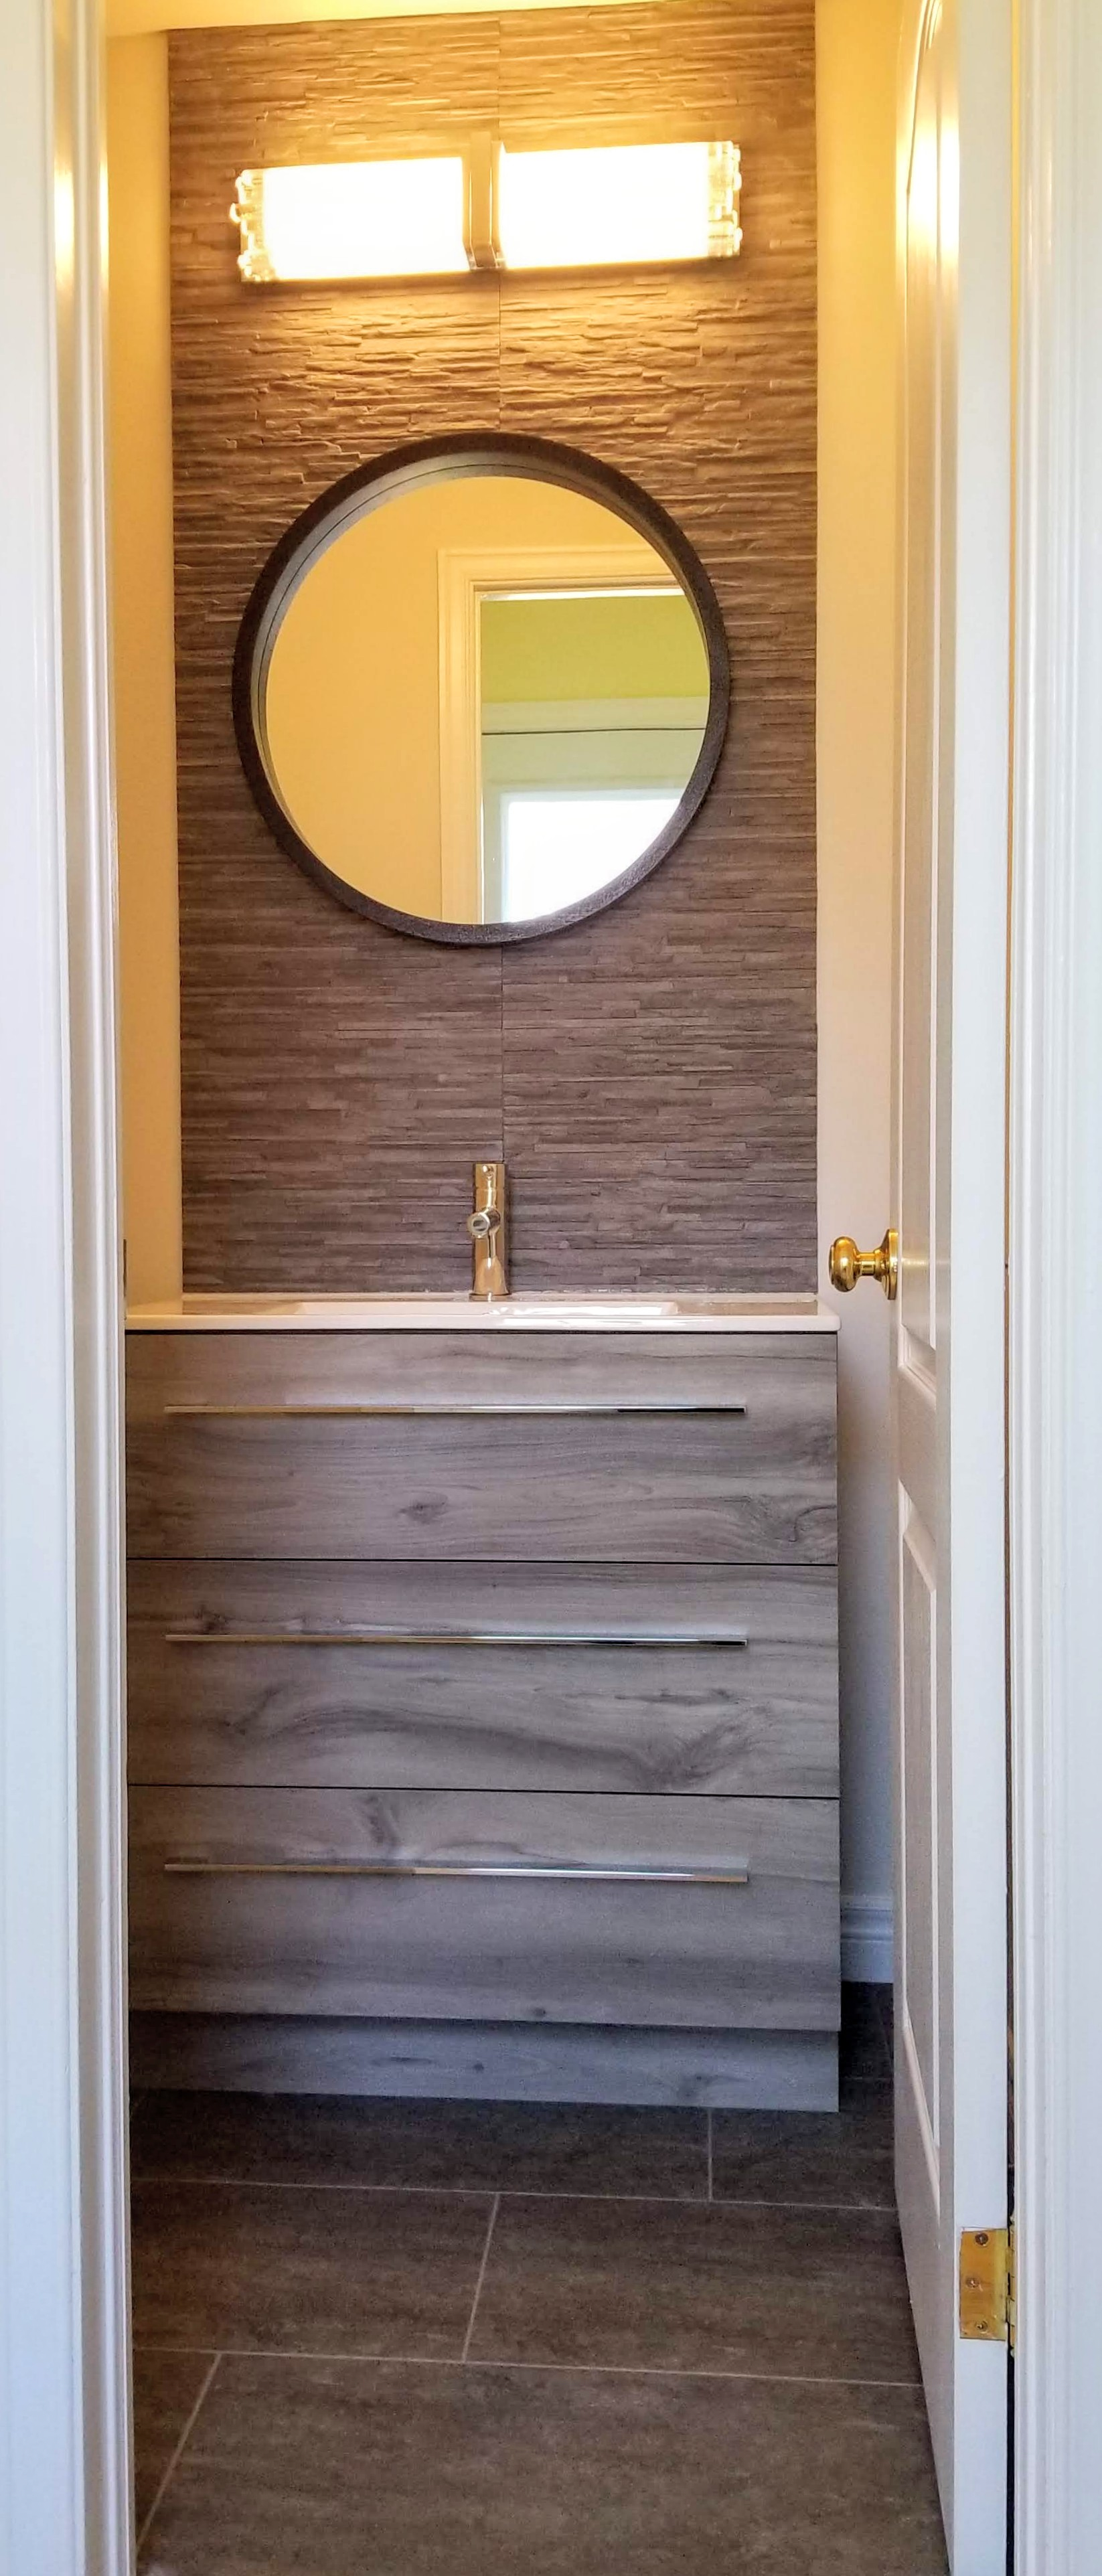 Grey bathroom vanity with accent tile wall